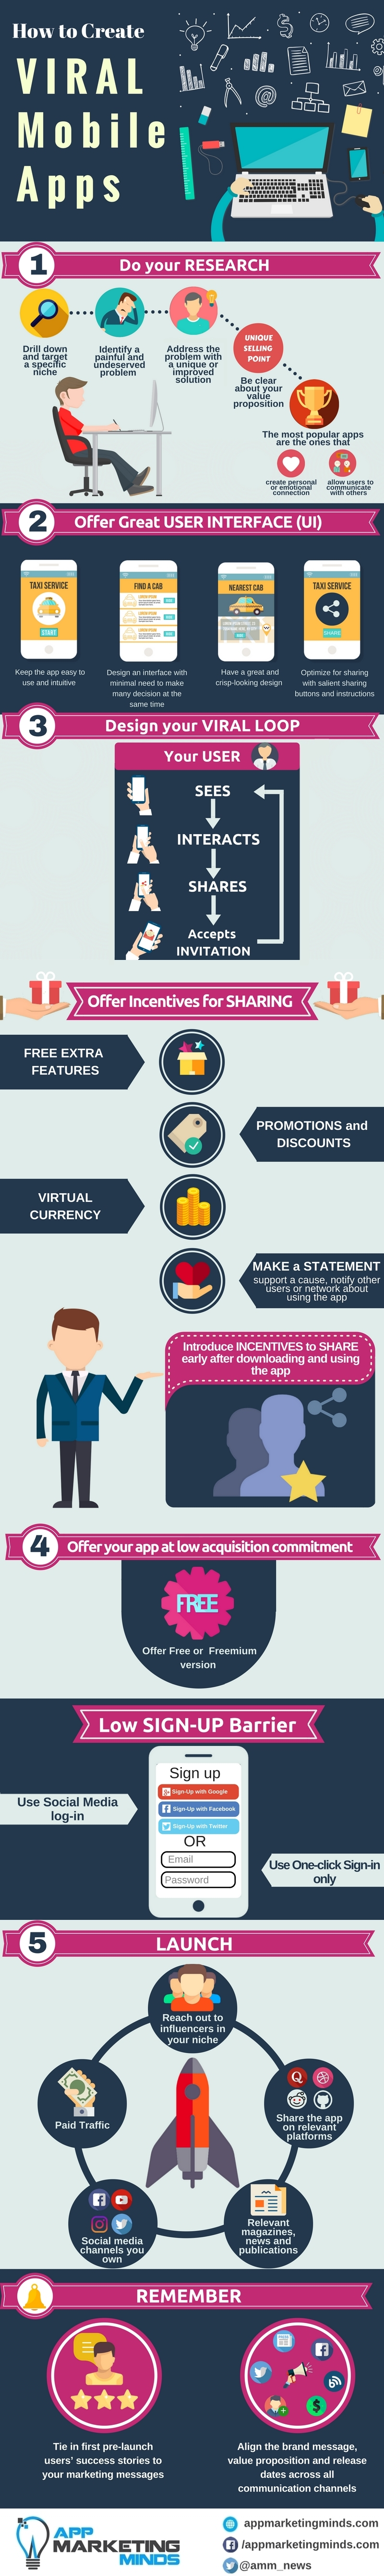 revised_infographic_how_to_create_viral_mobile_apps